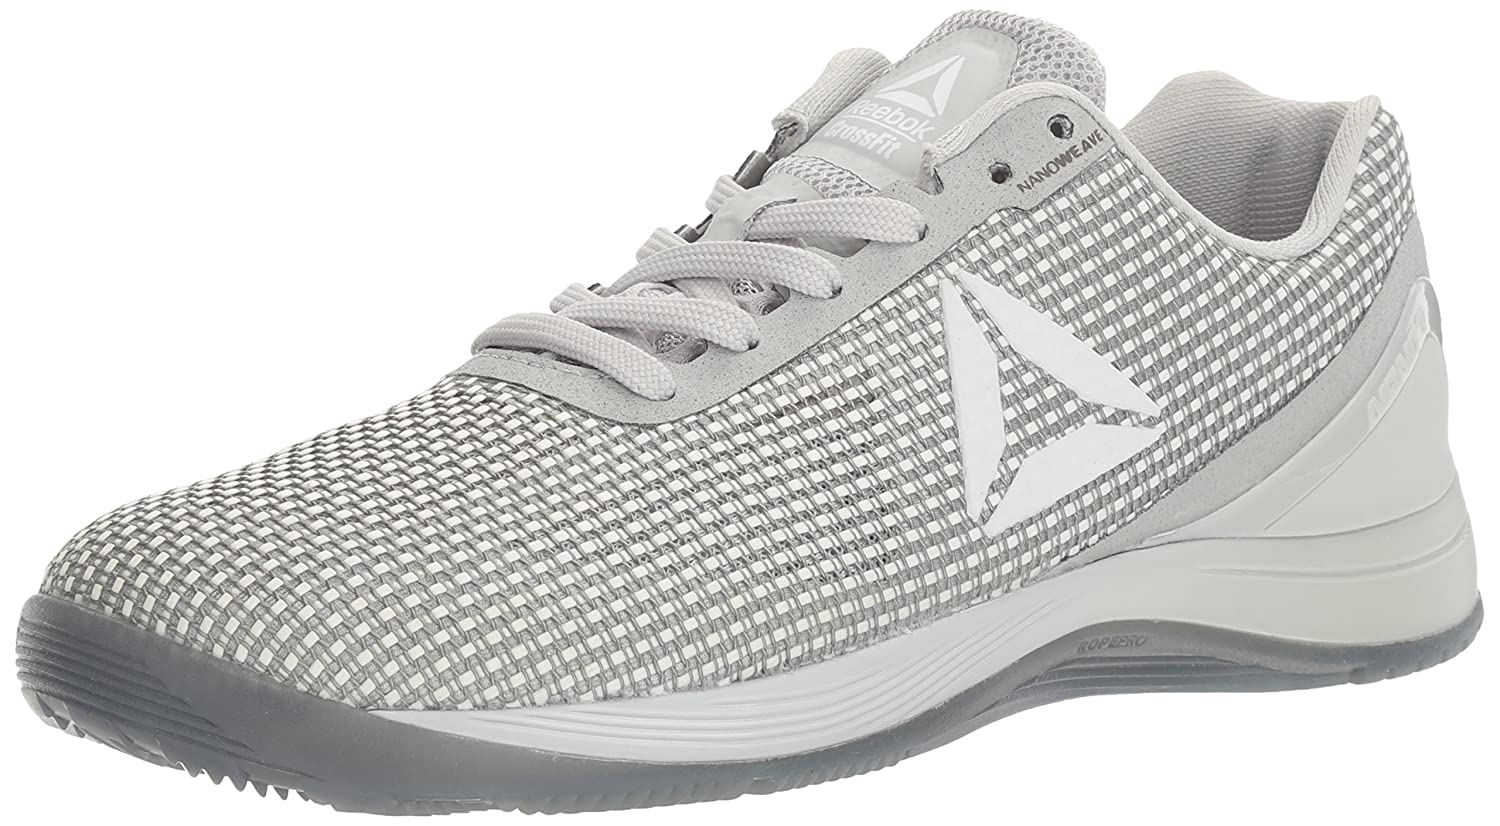 Reebok Women's Crossfit Nano 7.0 Track Shoe B01HH1Z220 9.5 B(M) US|White/Skull Grey/Black